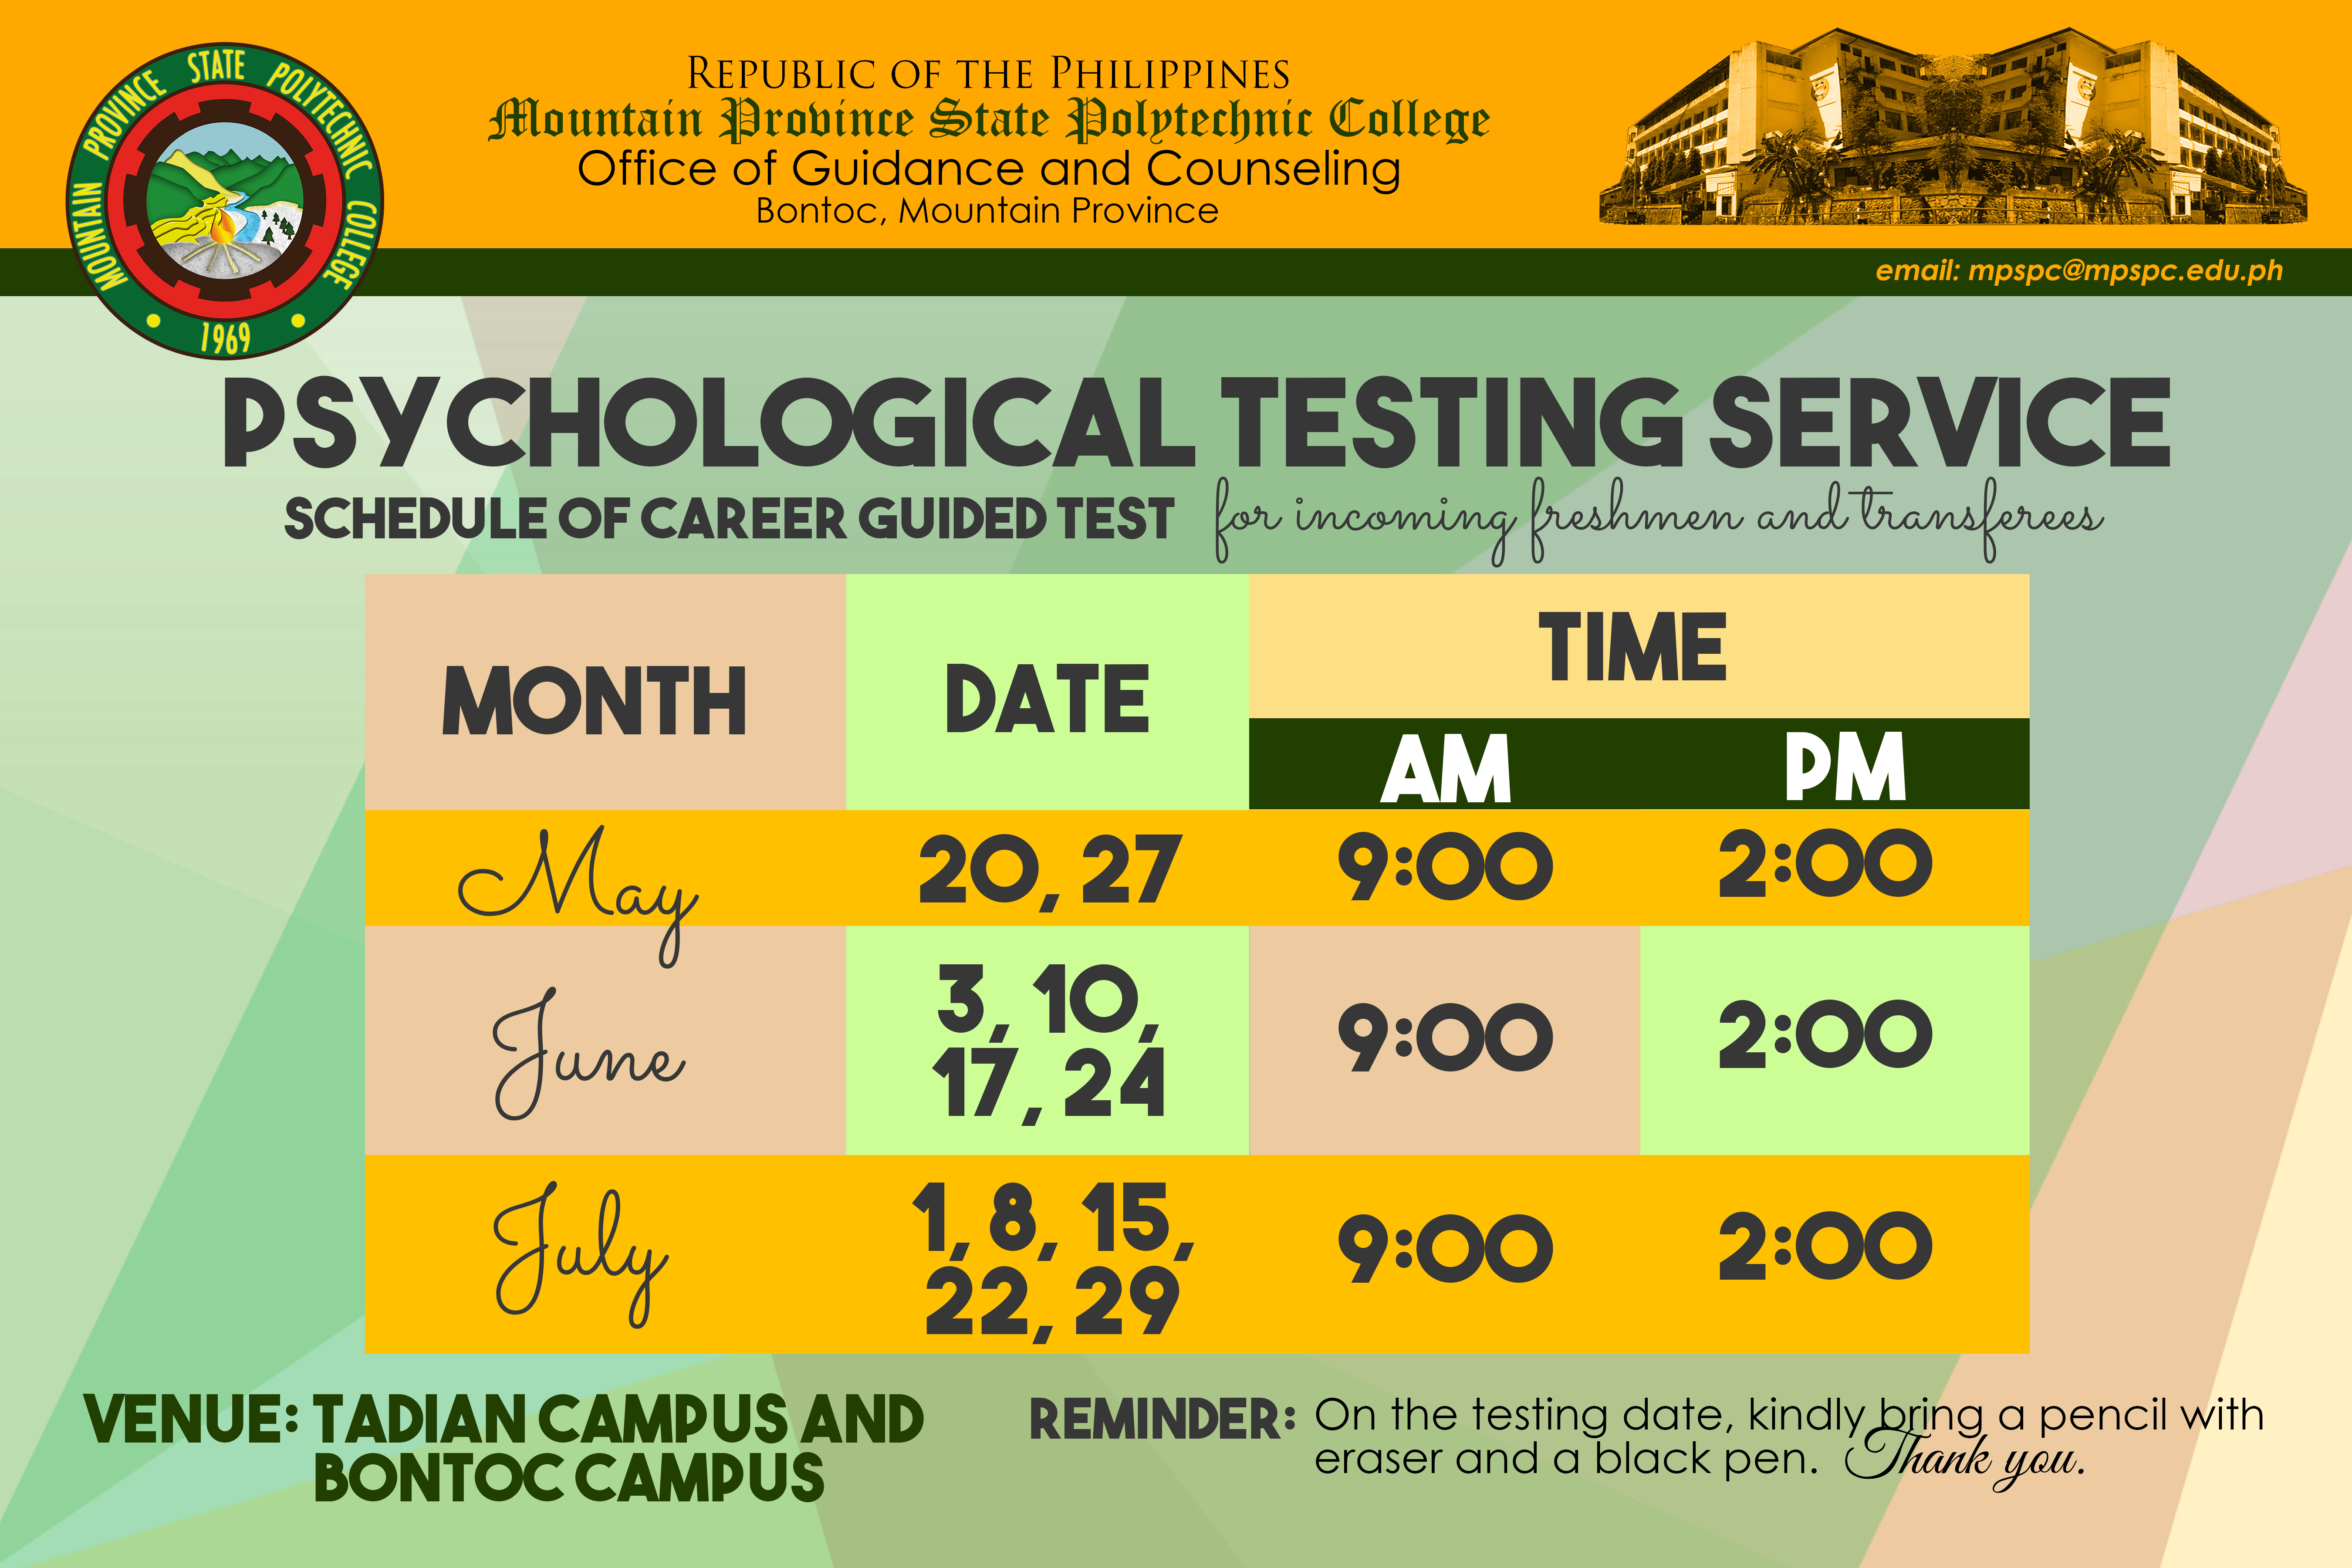 Schedule of Career Guided Test for Incoming Freshmen and Transferees